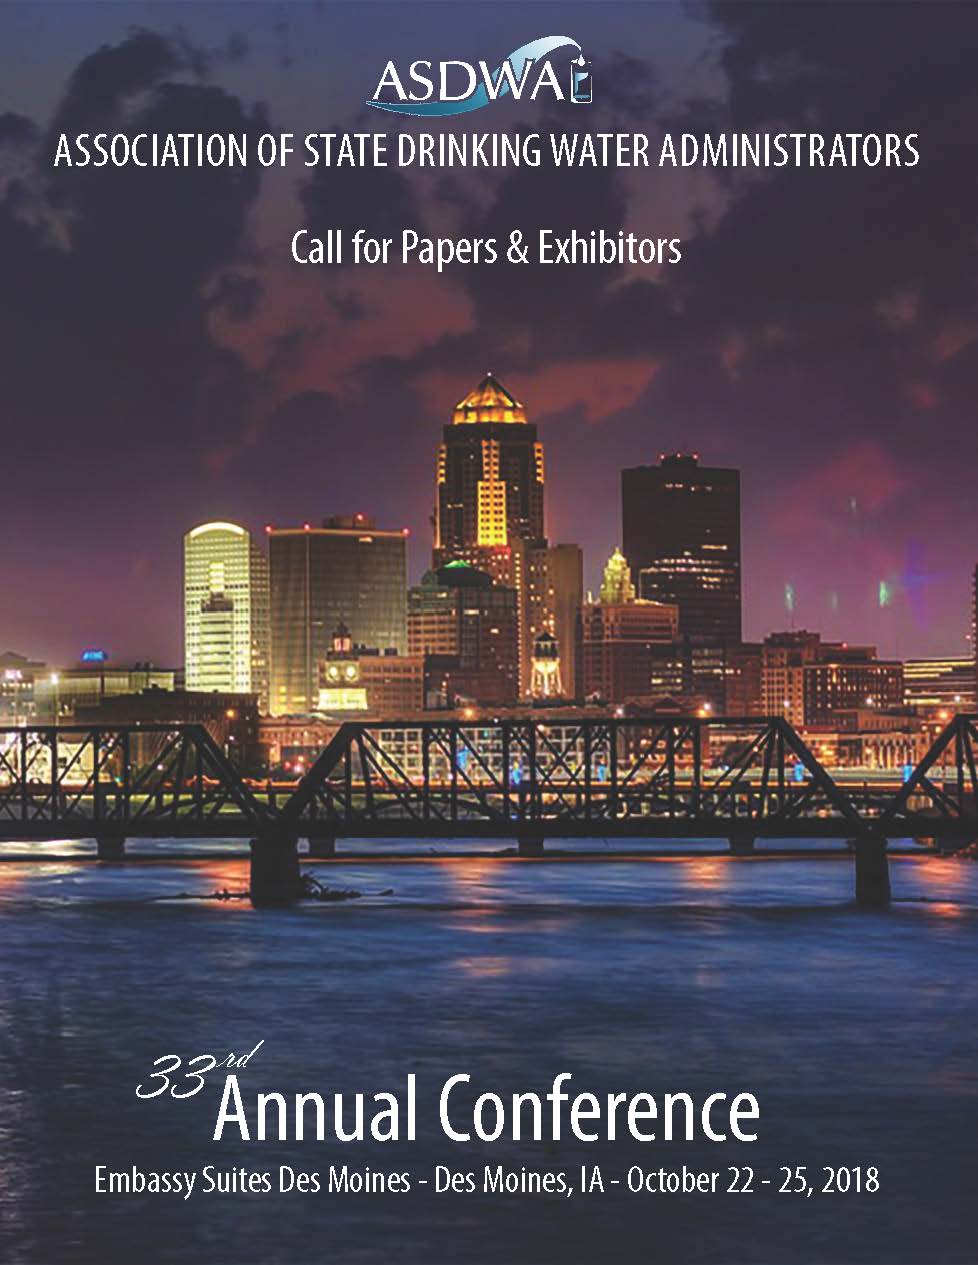 ASDWA Annual Conference: 2018